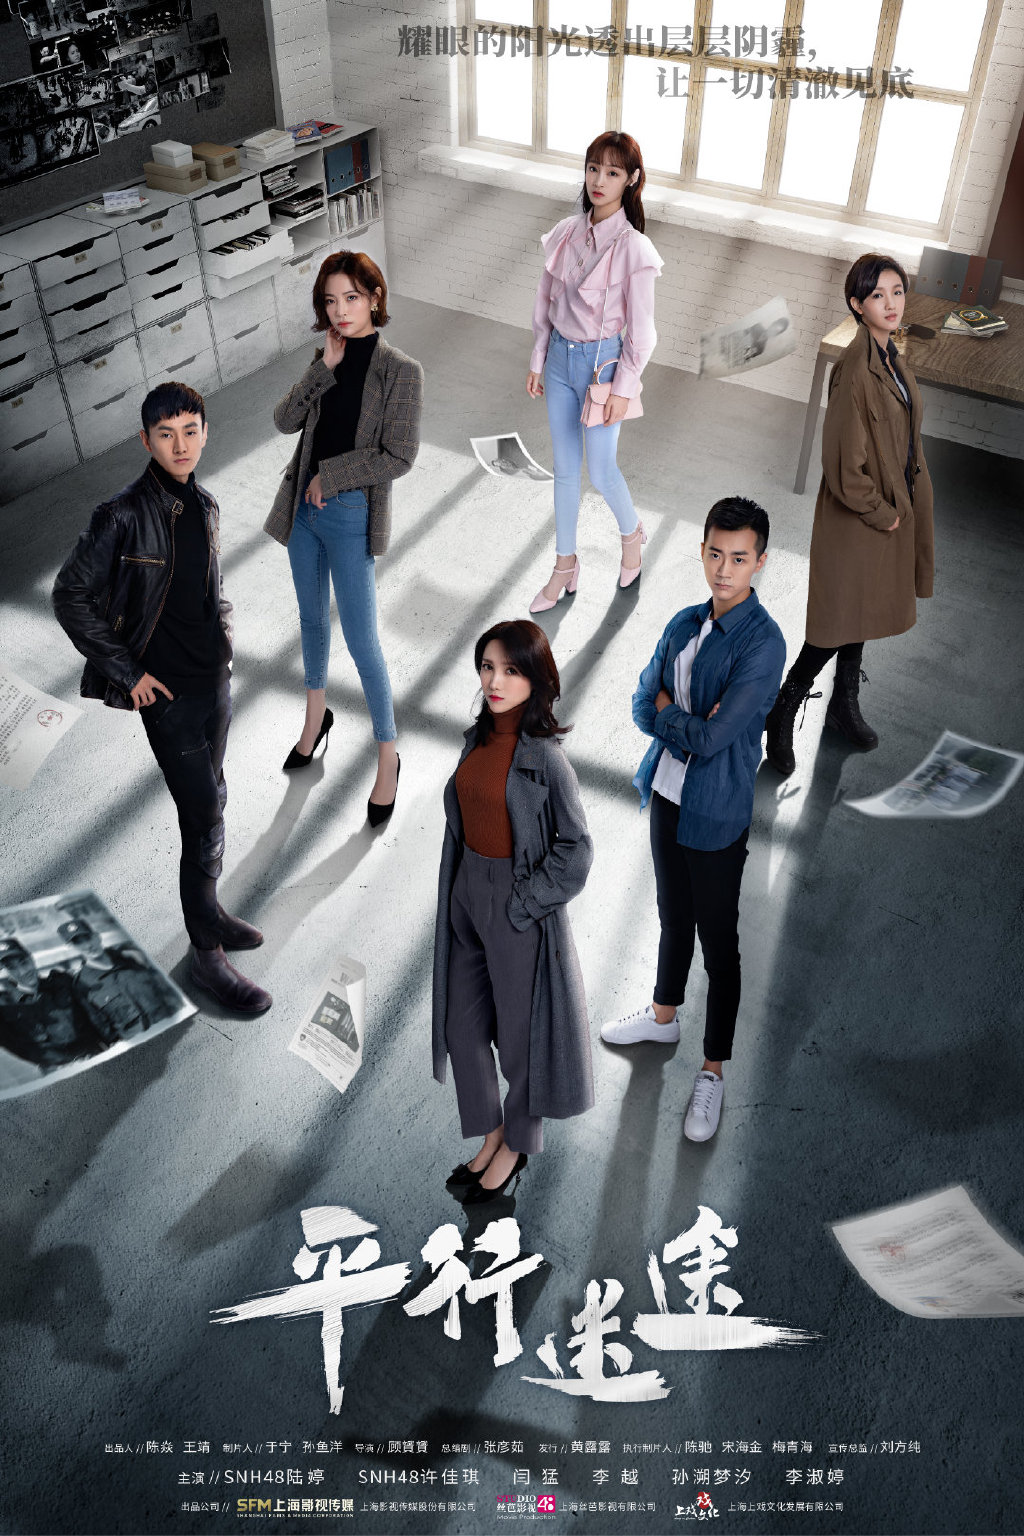 Parallel Lost Chinese Drama Poster